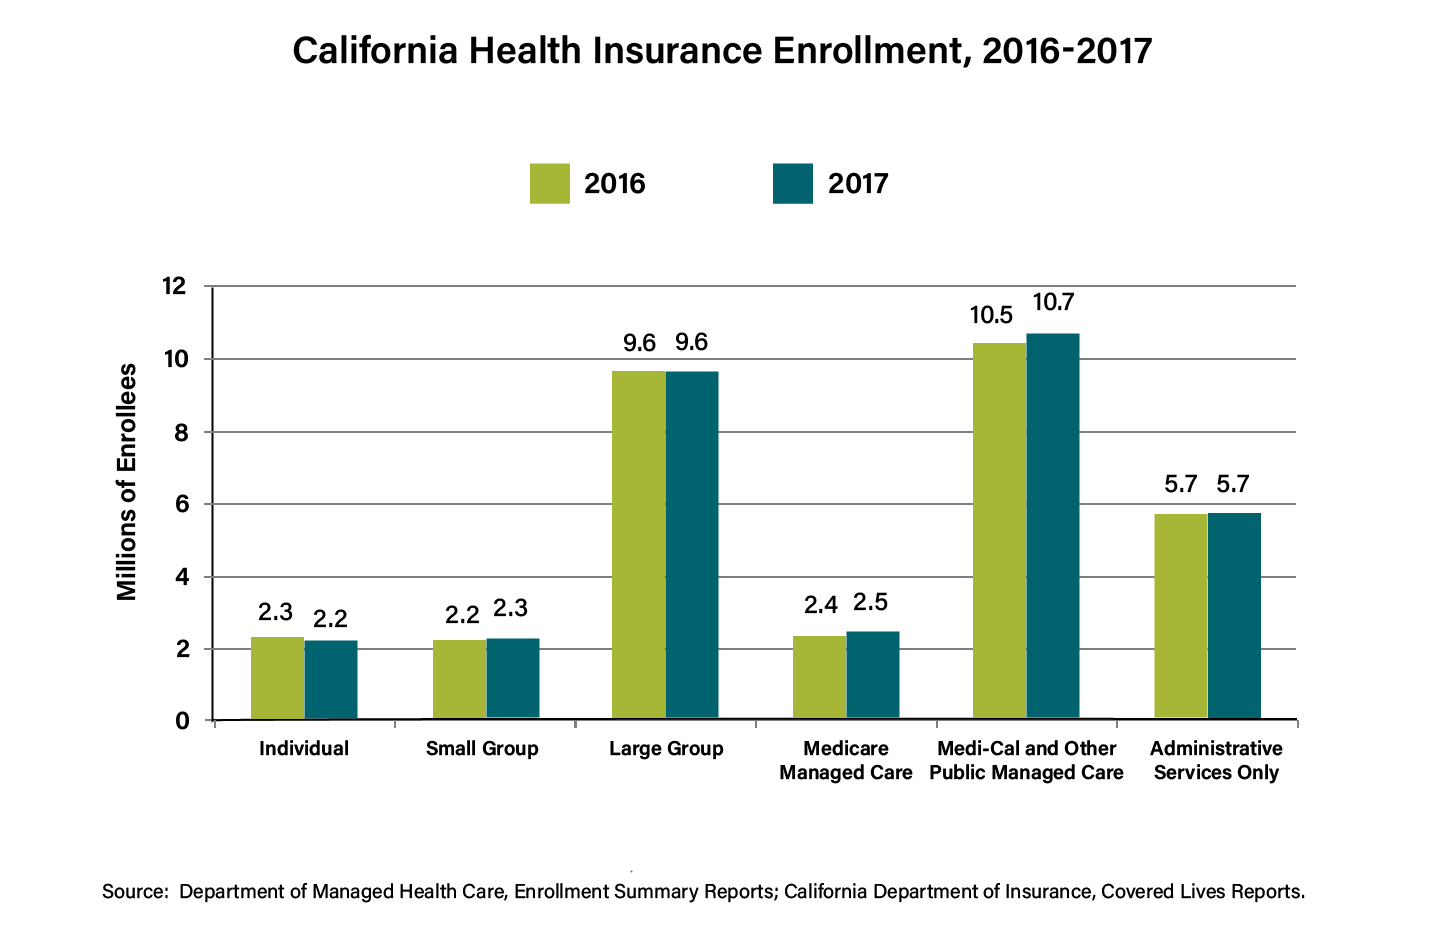 bar chart showing type of health insurance enrollment in California for 2016 and 2017